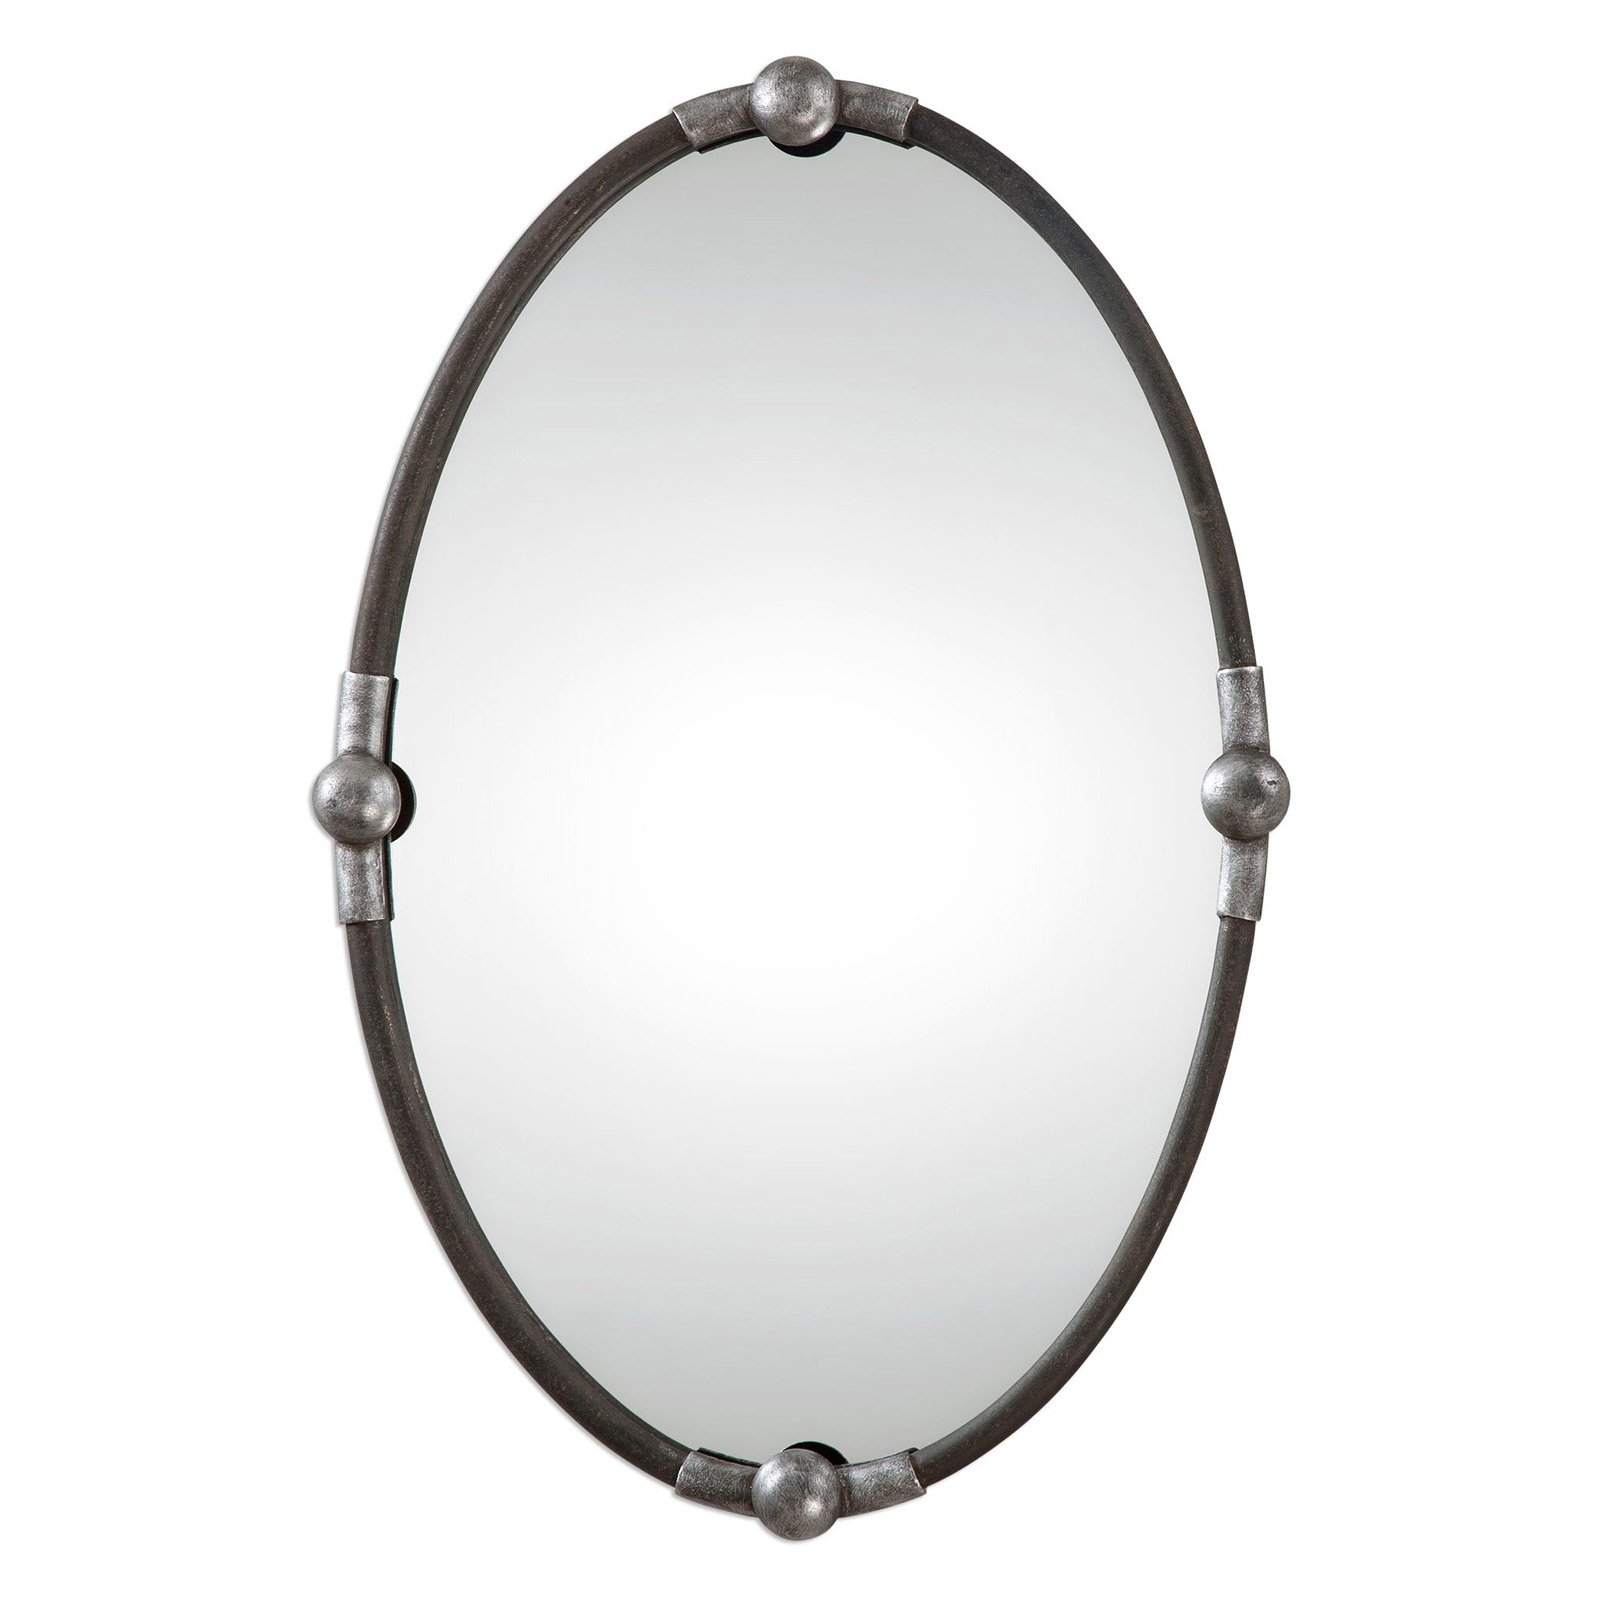 Uttermost Sherise Nickel Finish Oval Beveled Mirror 22w X 32h In Within Black Oval Mirror (Image 15 of 15)